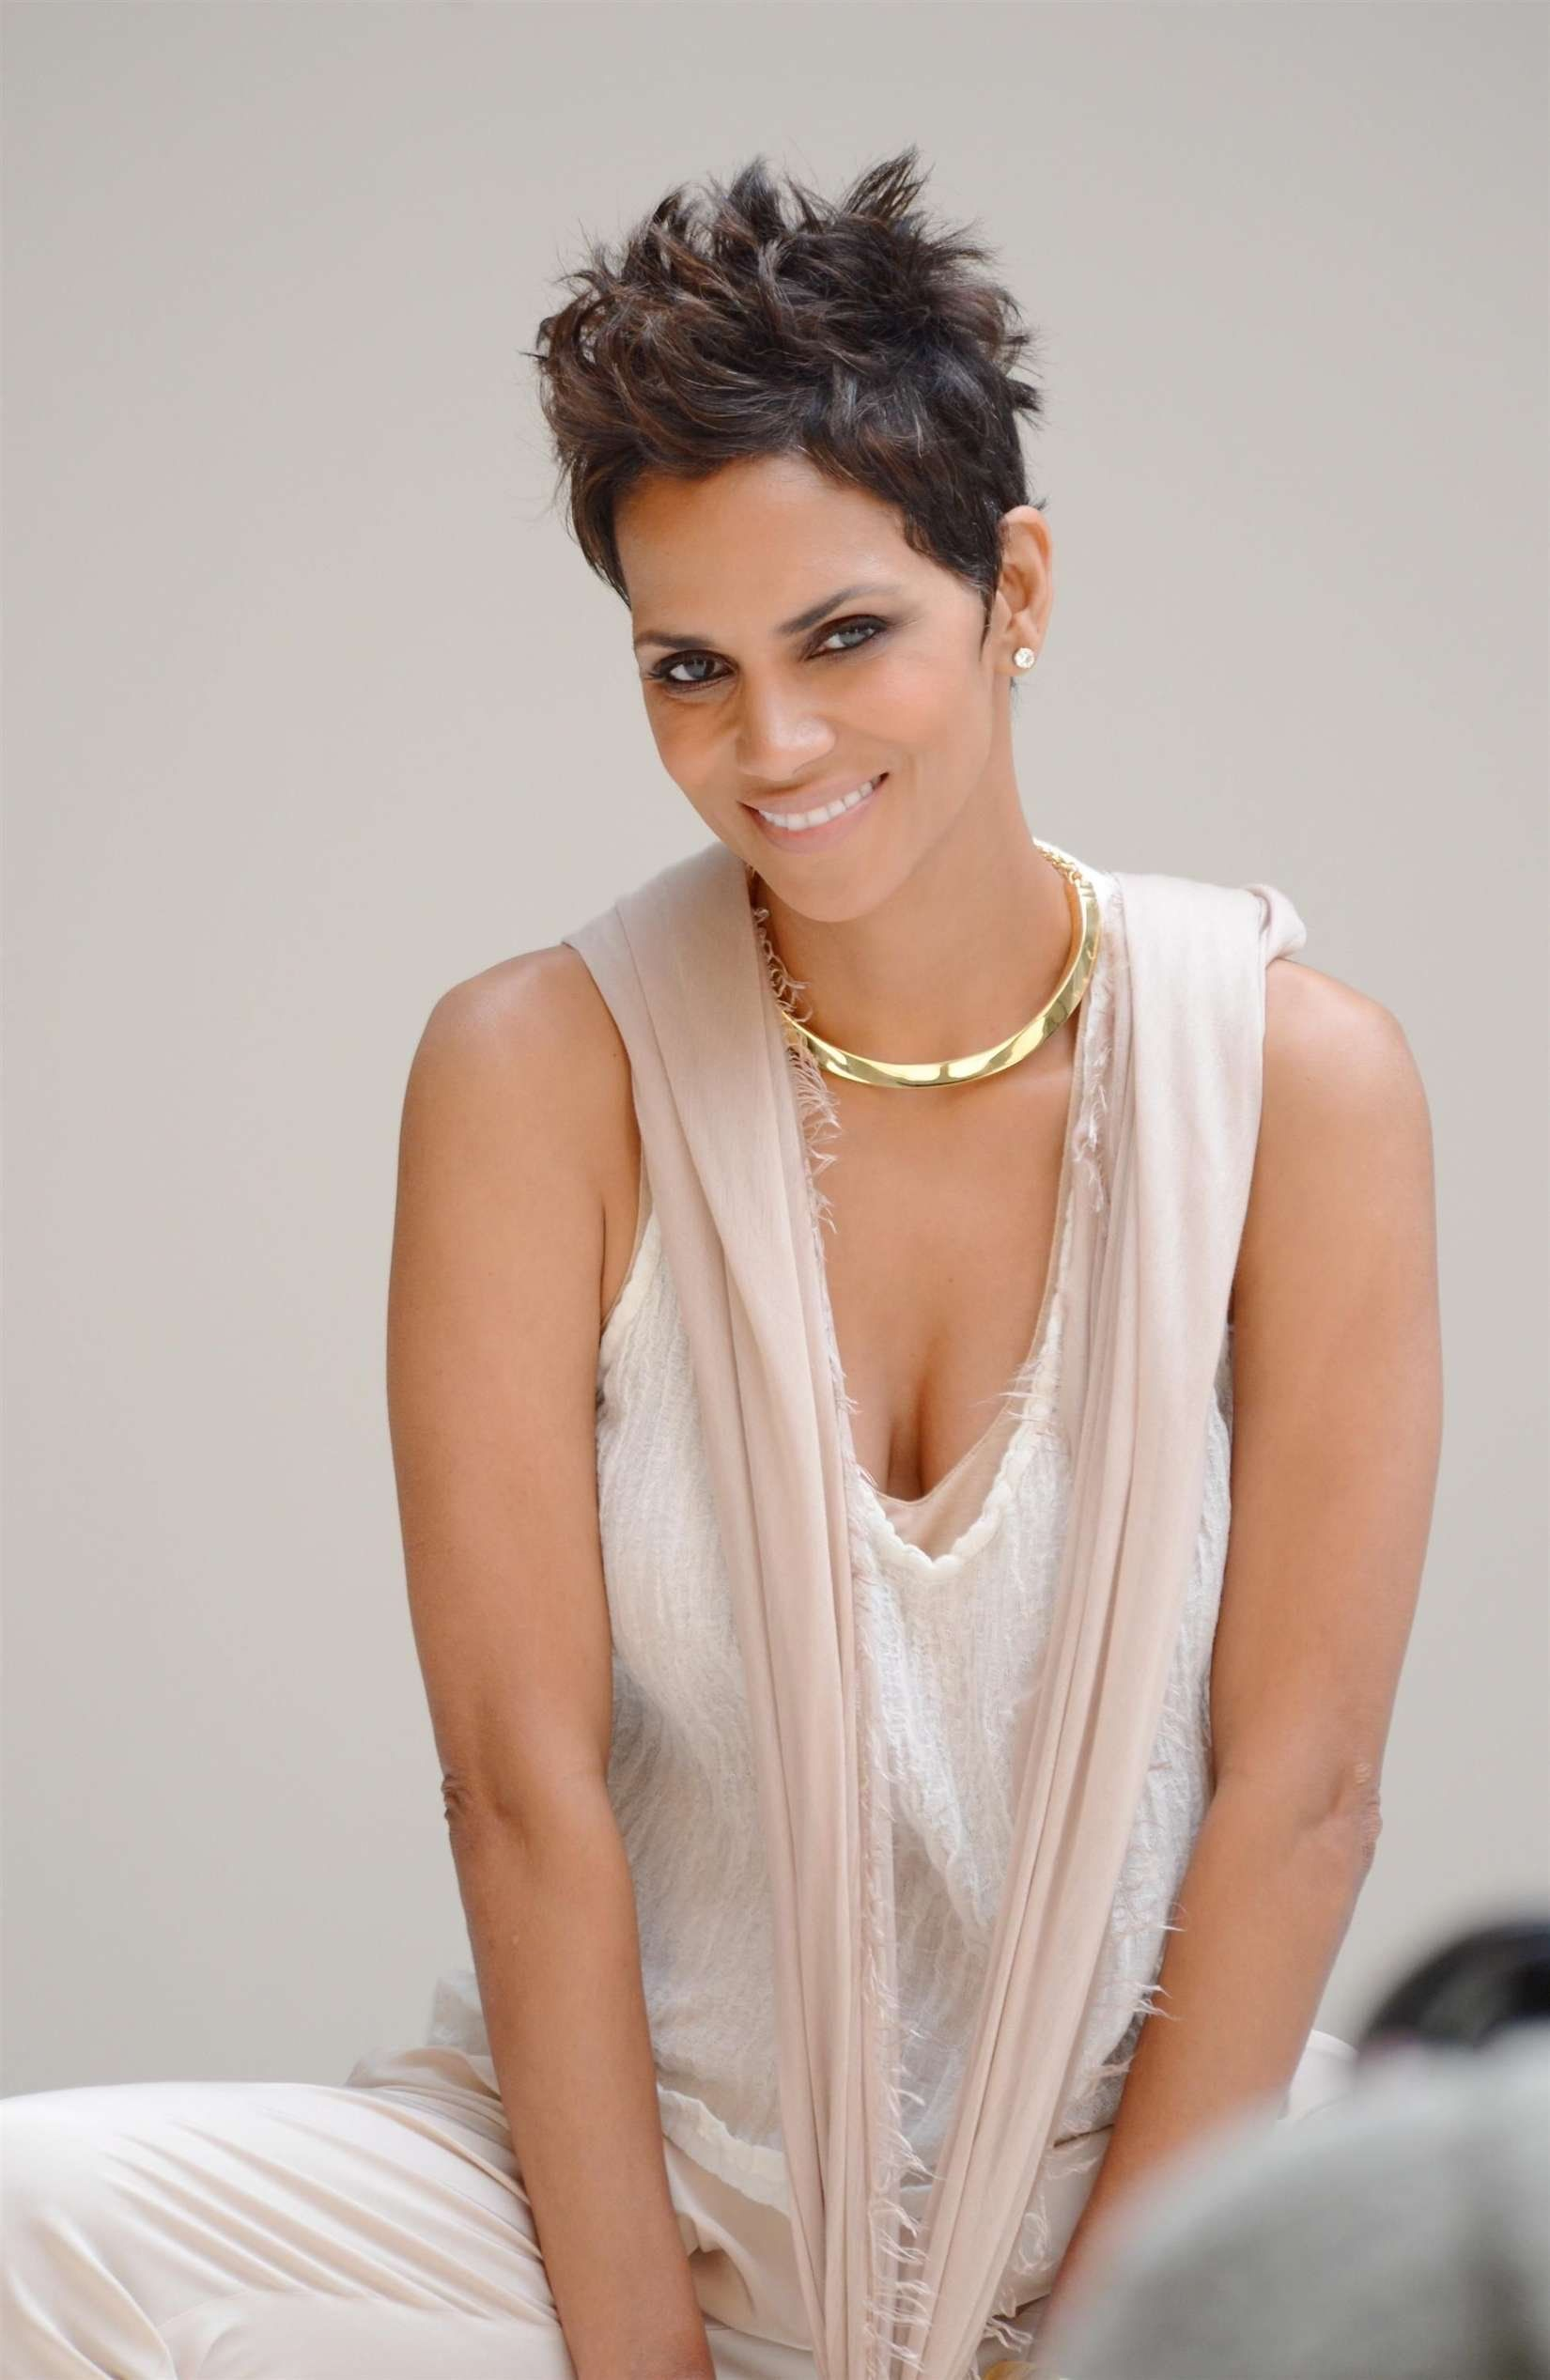 Halle berry coupe courte 8 pinterest - Coupe courte halle berry ...